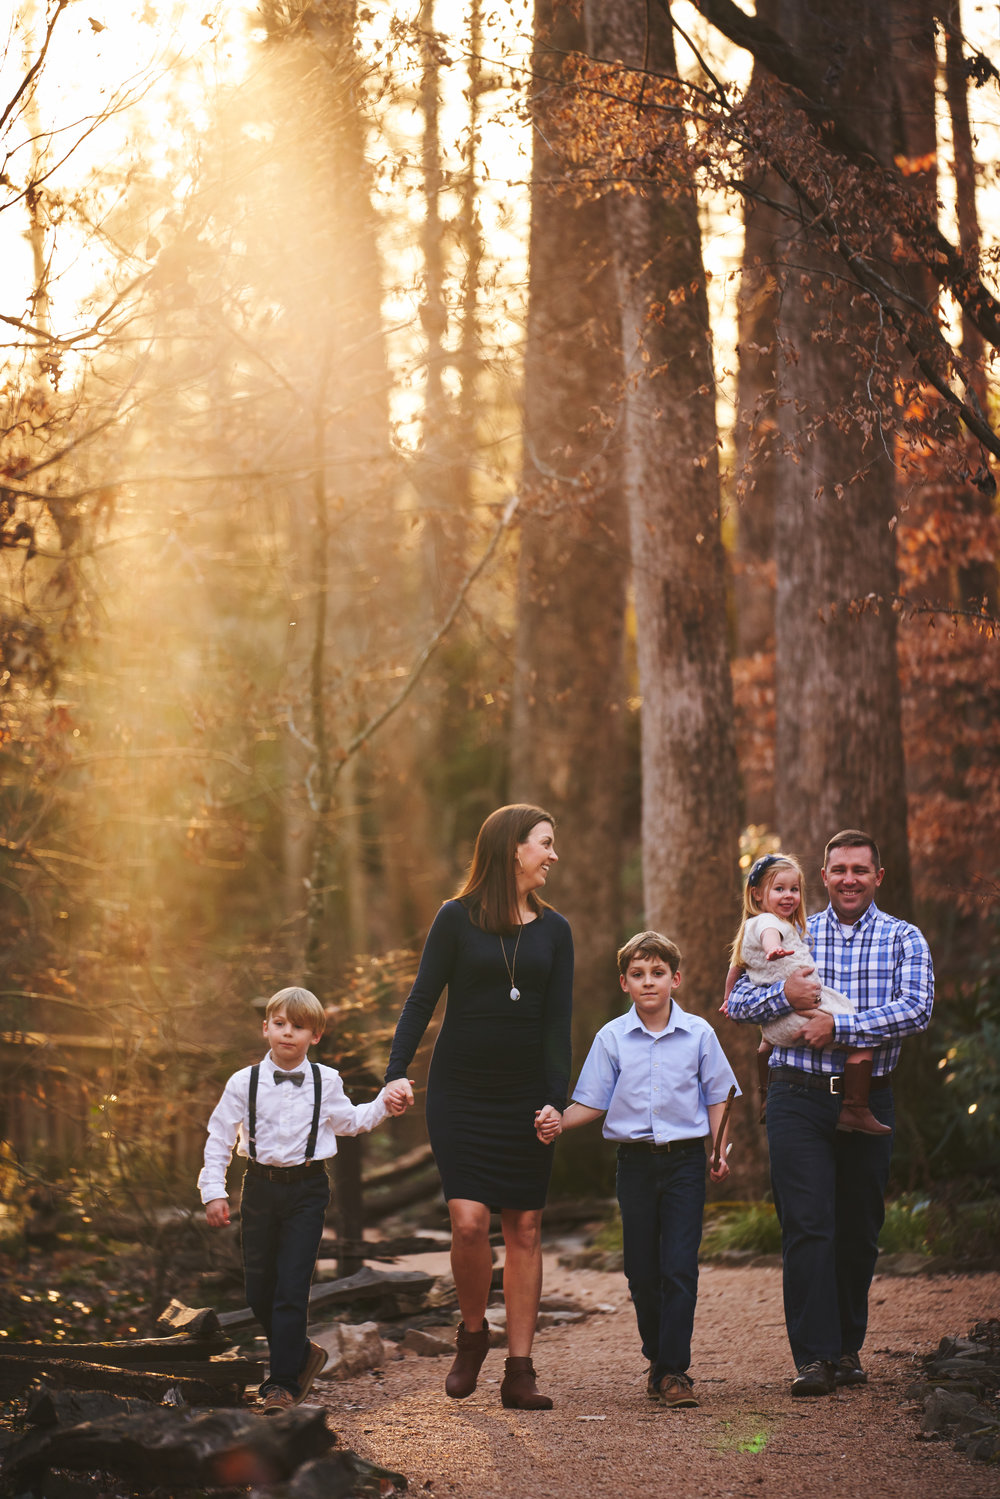 Family walking in the sun | Family Photo Session at the Clemson Botanical Gardens